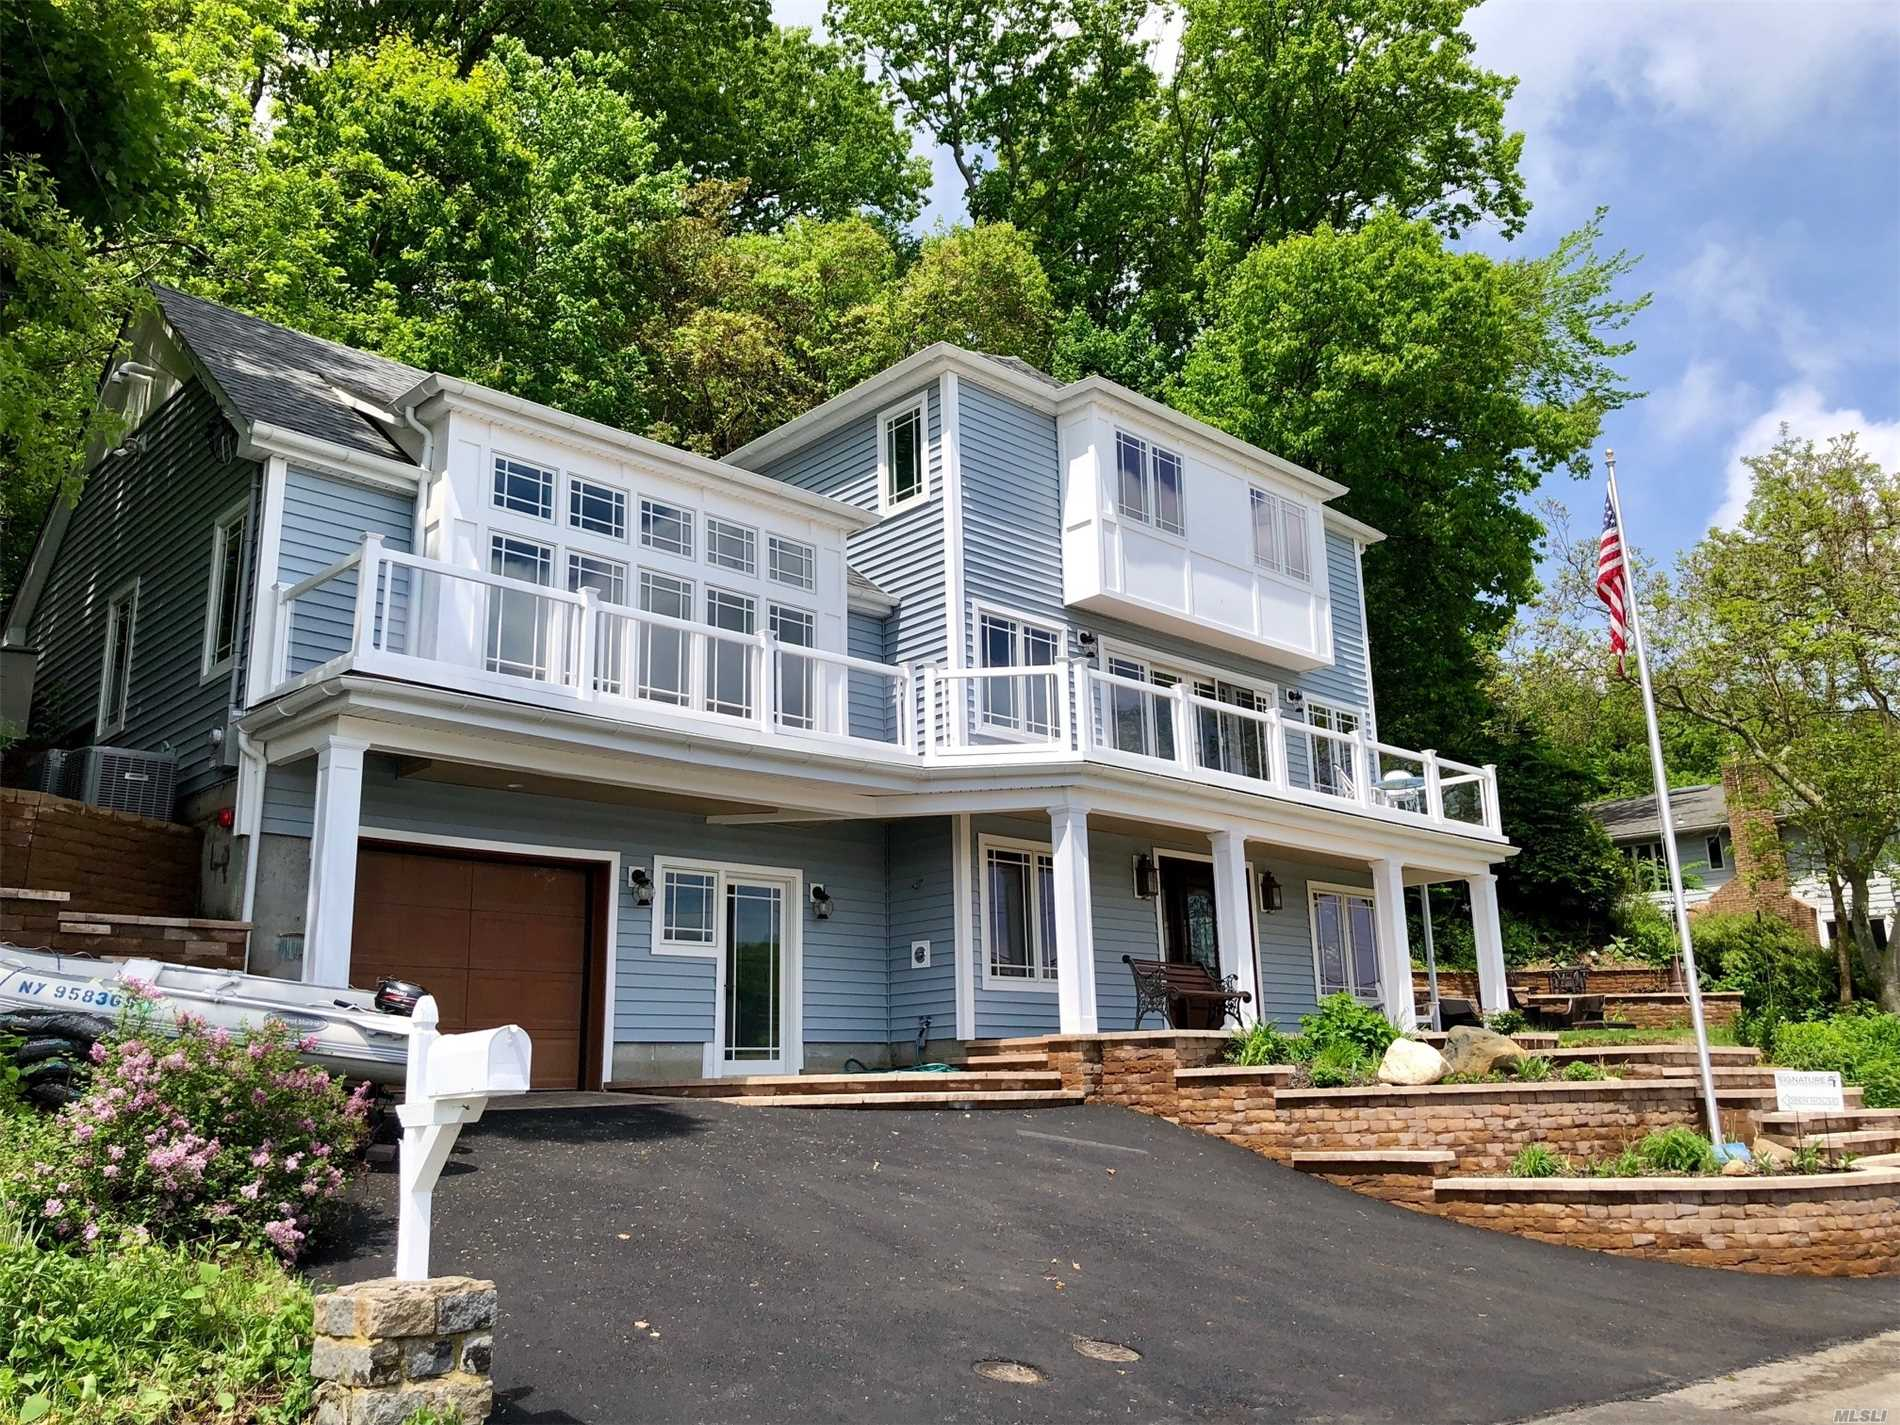 New Construction Waterfront Contemporary With Wrap Around Water Views From Every Room! 3 Floors Of Living Space, 3 Bedroom, 2.5 Baths With Plenty Of Room For More Bedrooms. Chef's Kitchen With Radiant Heat Floor. Thermadore Appliances, Huge Mediterranean Quartzite Island, Wet Bar, Master Suite With Huge Radiant Heat Bath. Standby Generator, Outdoor Shower, Hbca Beach/Dock!